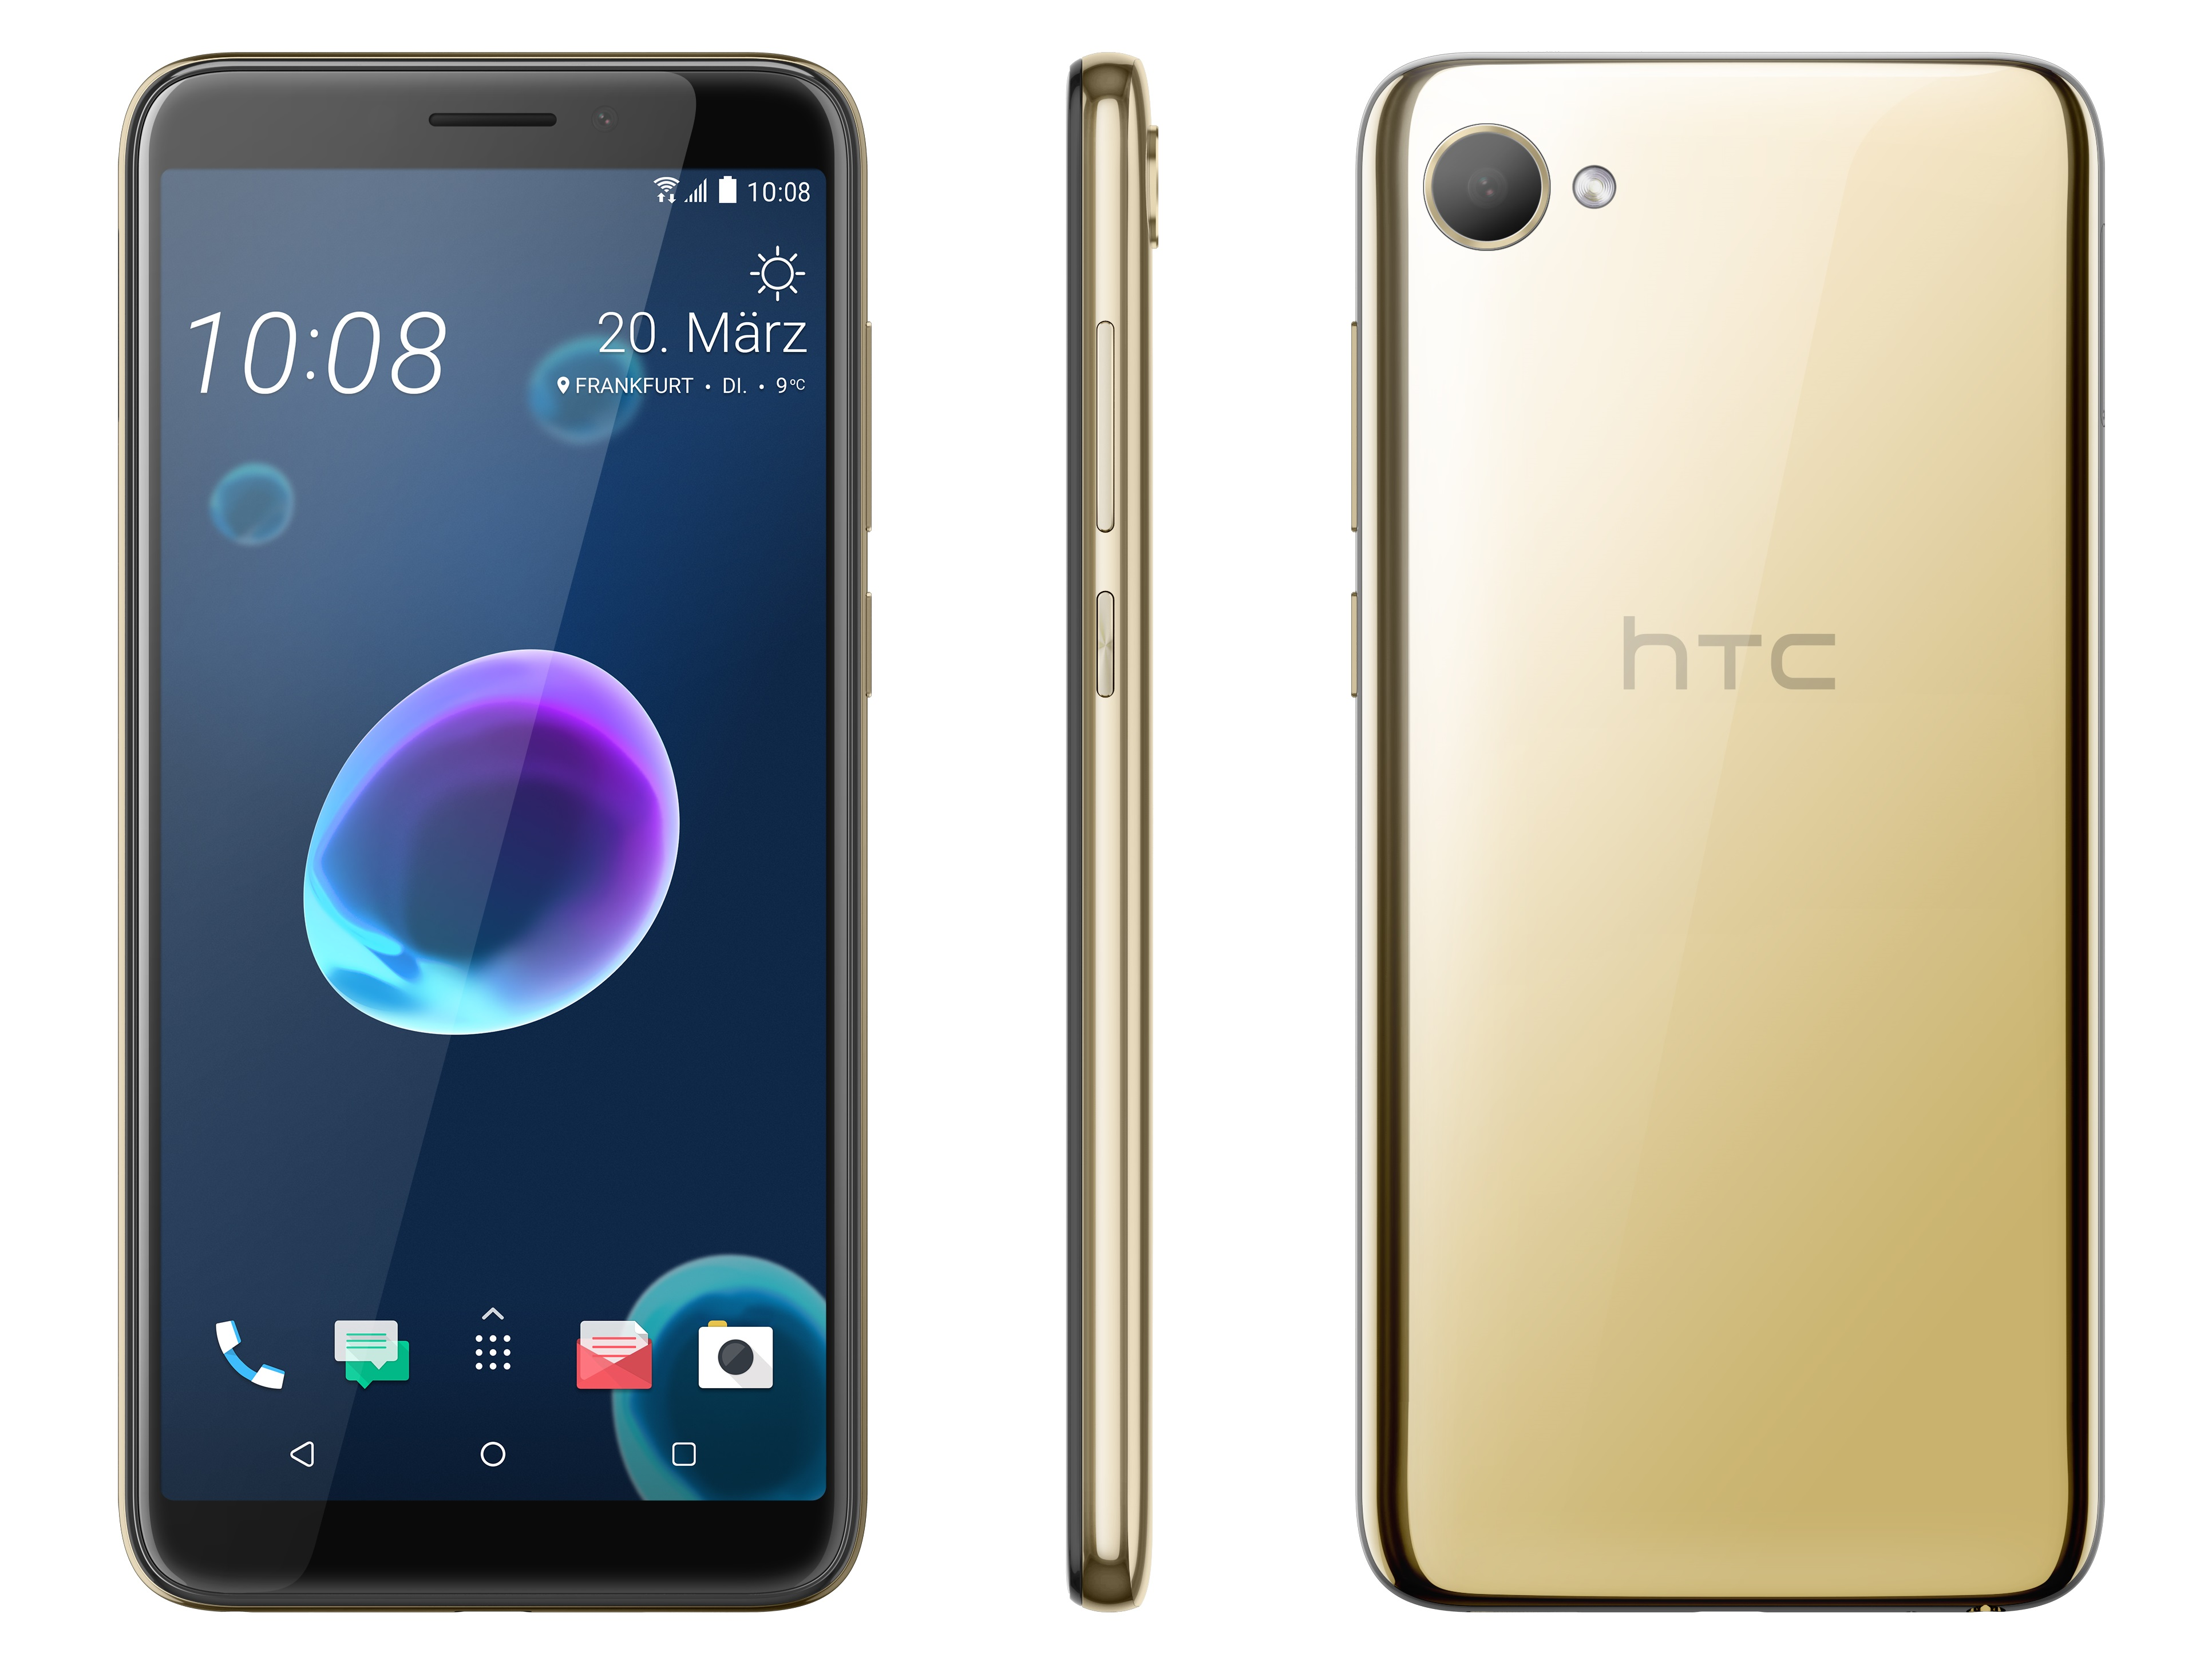 htc desire 12 smartphone review notebookcheck net reviews rh notebookcheck net Sony Xperia S sony ericsson xperia x10 manual user guide